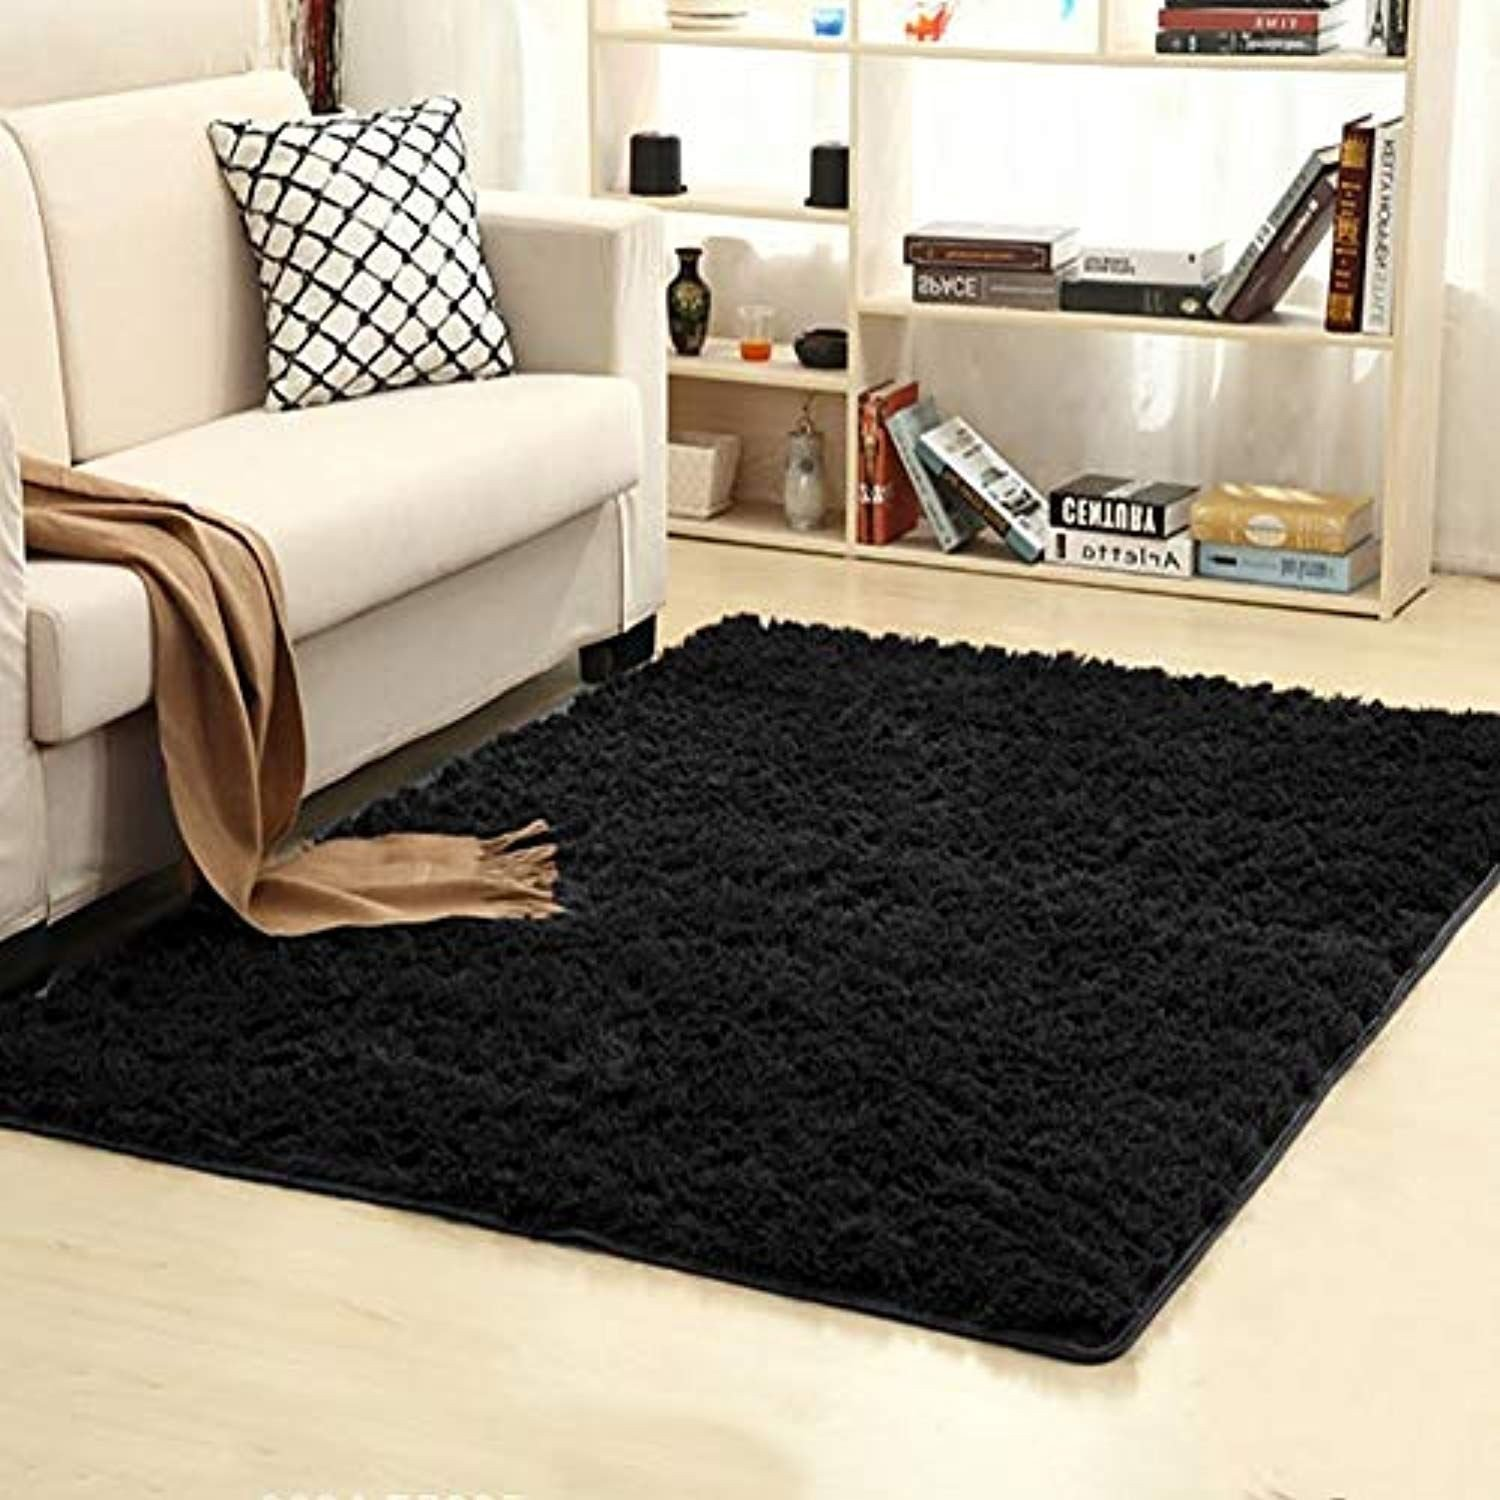 Soft Rugs for Bedroom Inspirational Junovo Ultra soft Contemporary Fluffy Indoor area Rugs Home